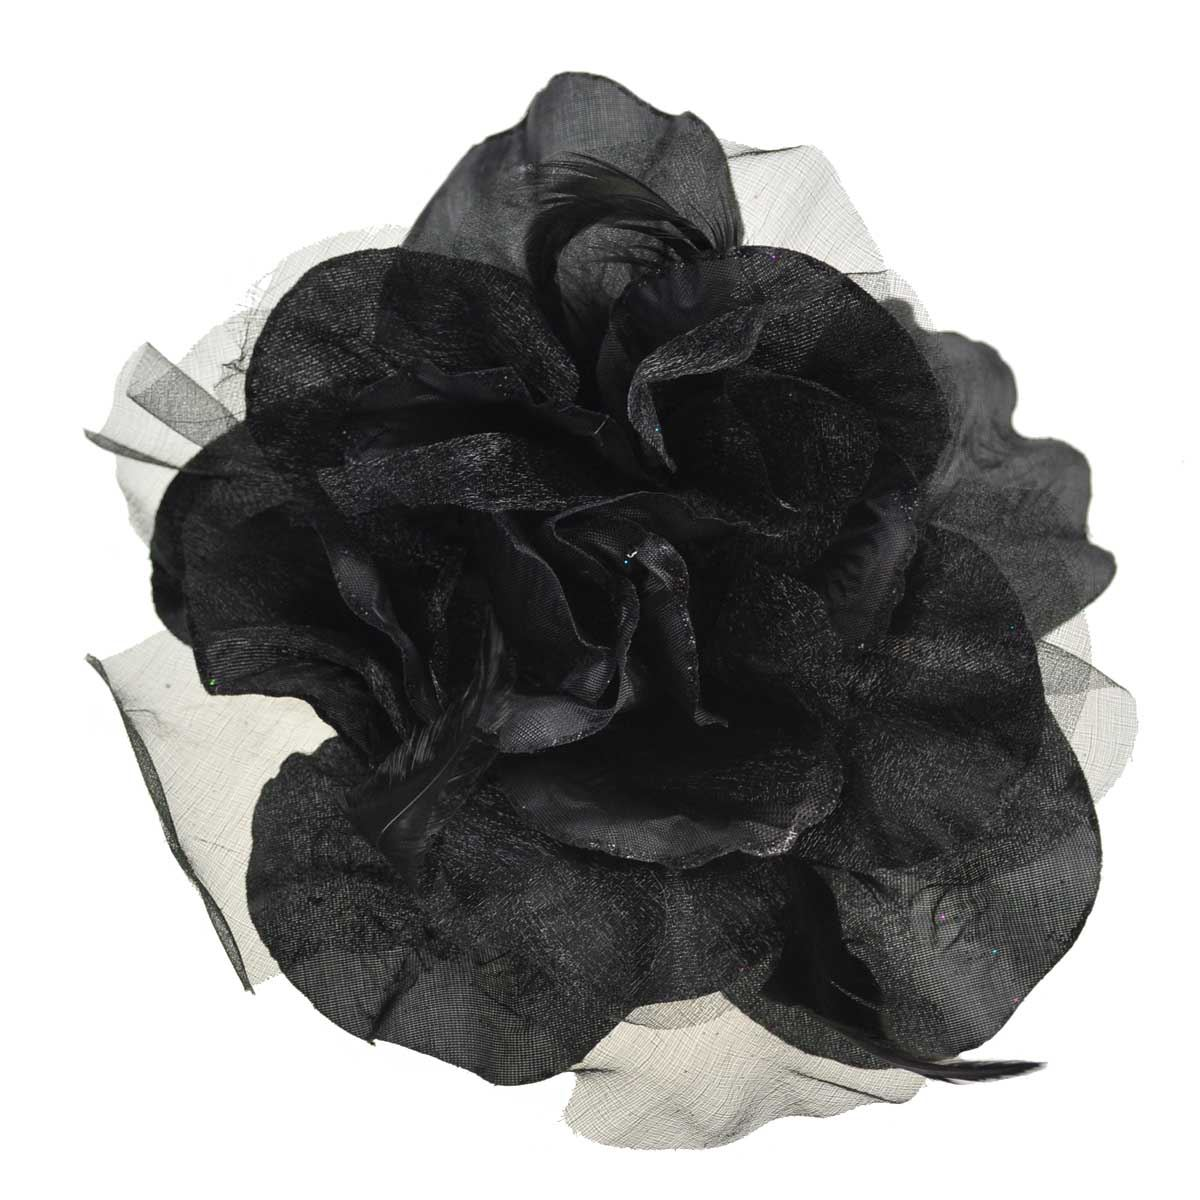 gro billig corsage kleid blumen haarspange kopfschmuck brosche elastisch ebay. Black Bedroom Furniture Sets. Home Design Ideas